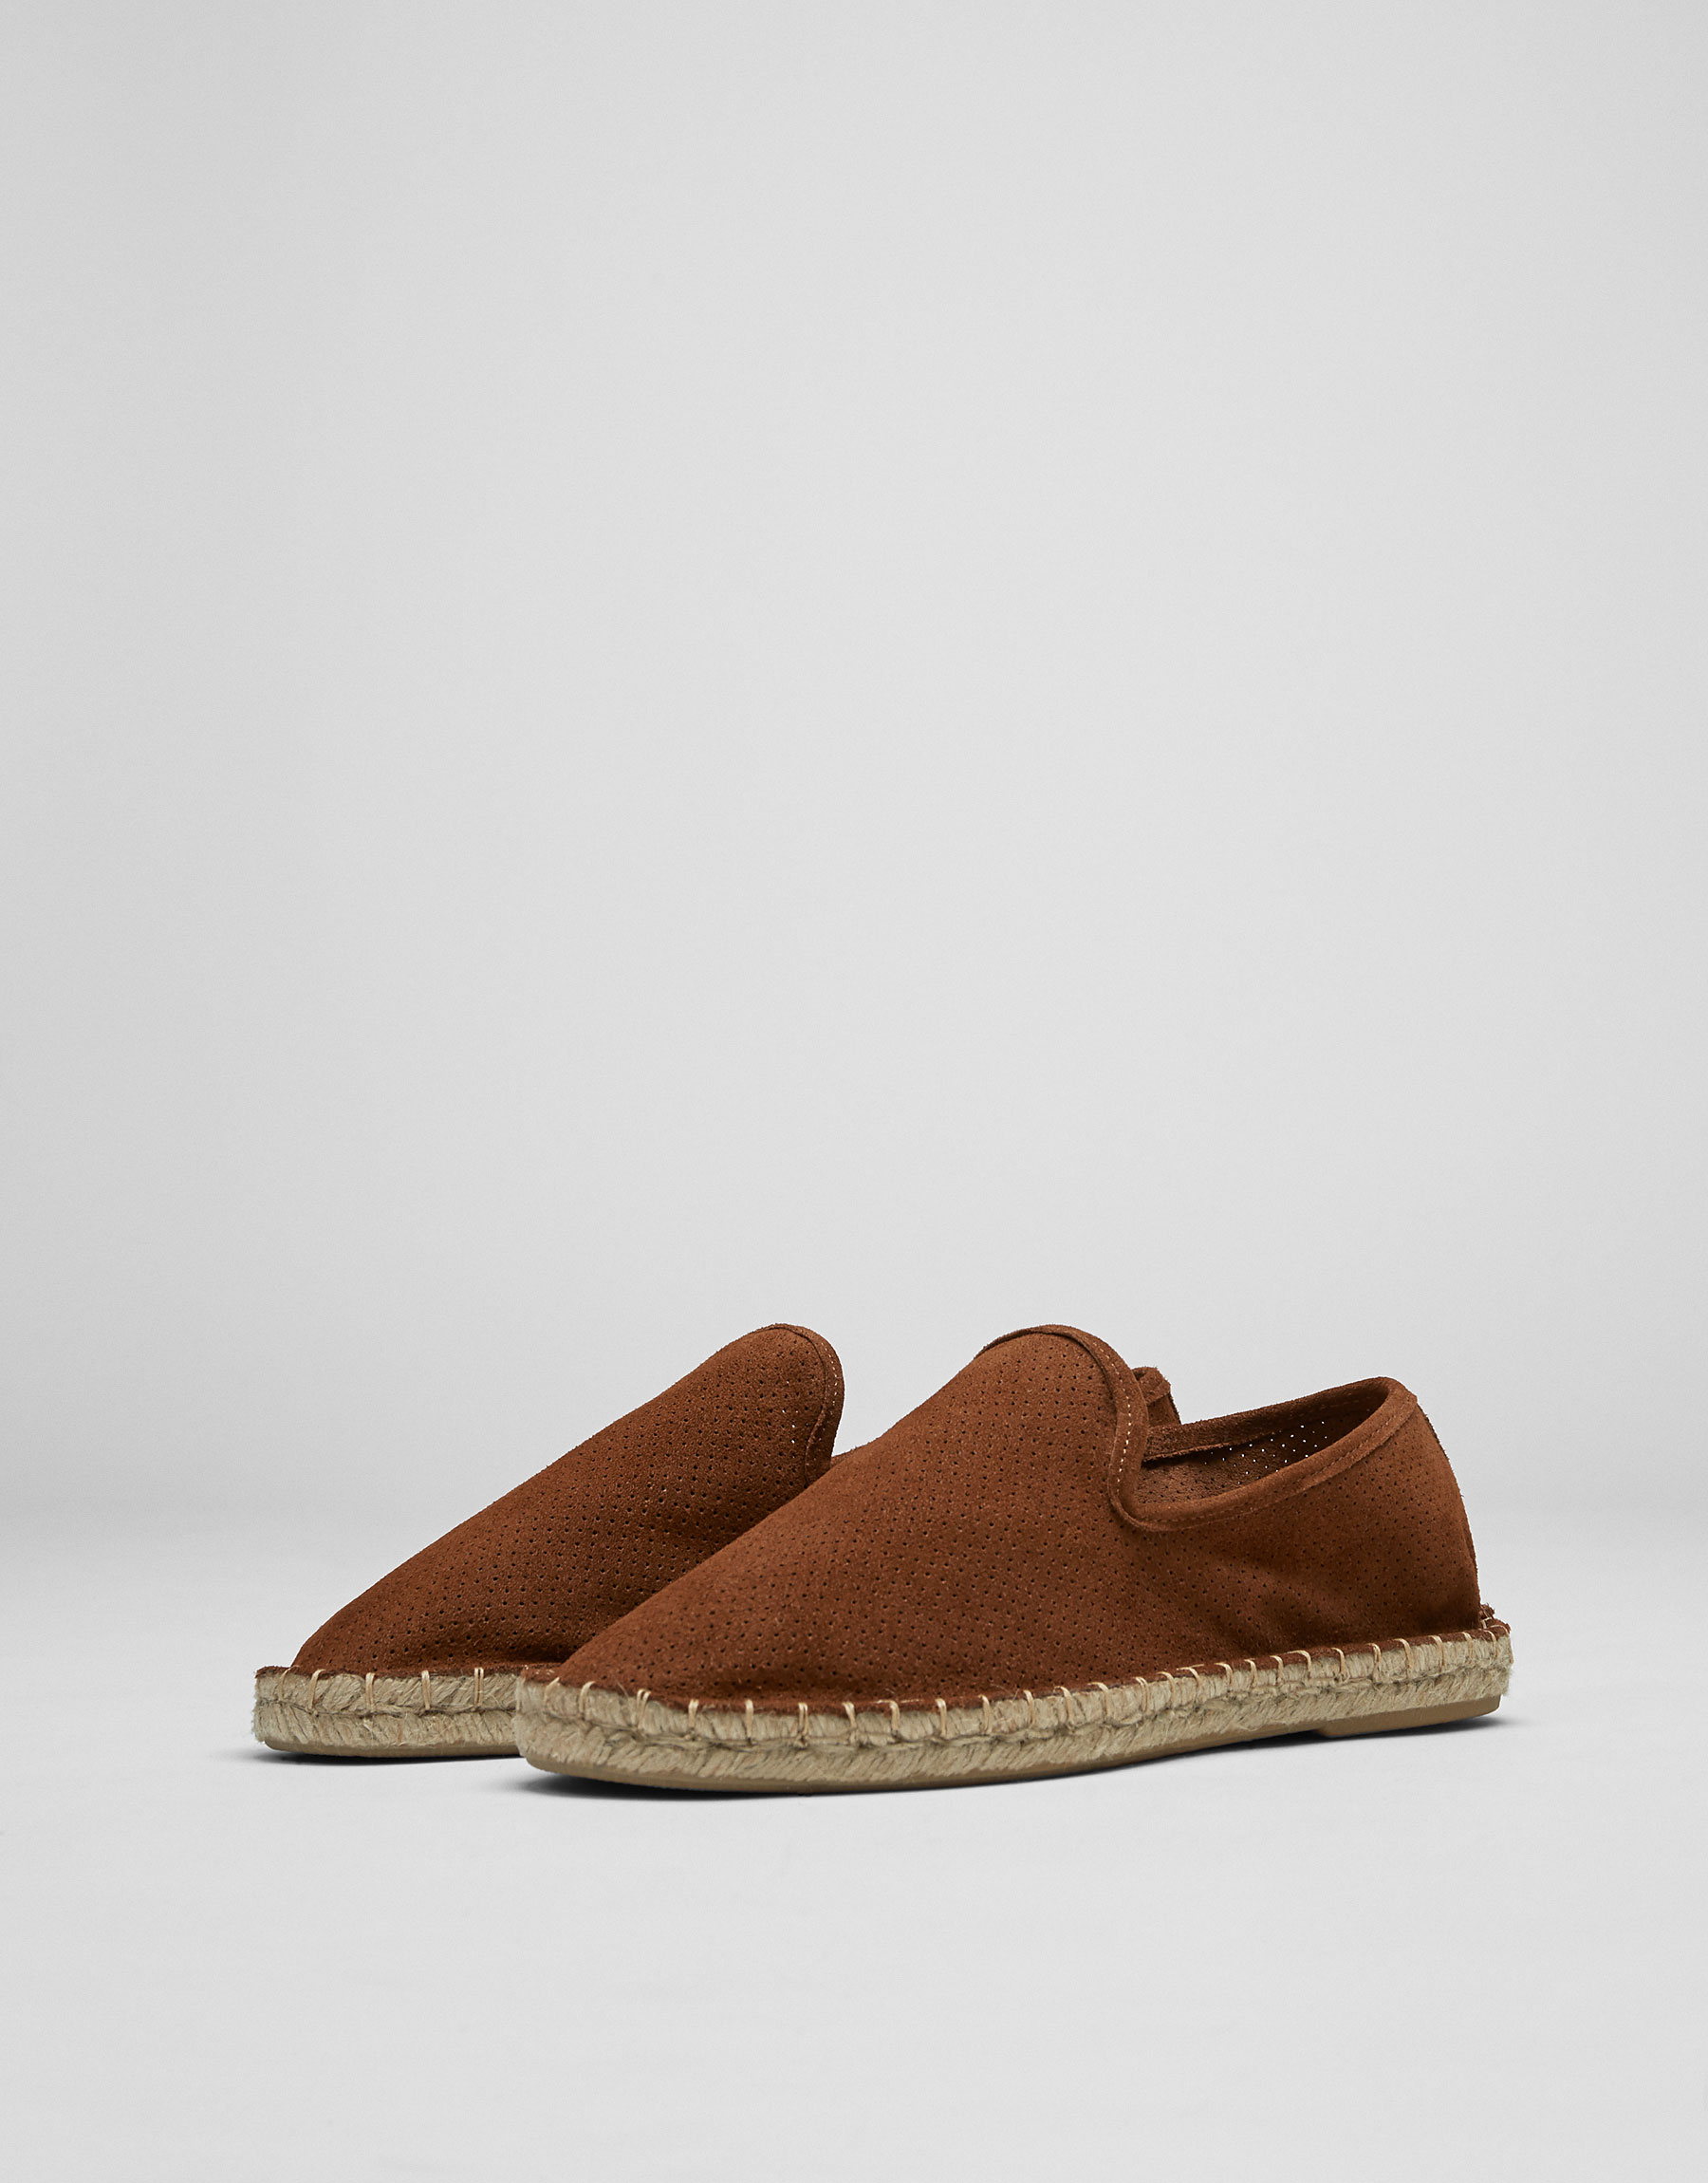 Jute and split suede slippers with broguing